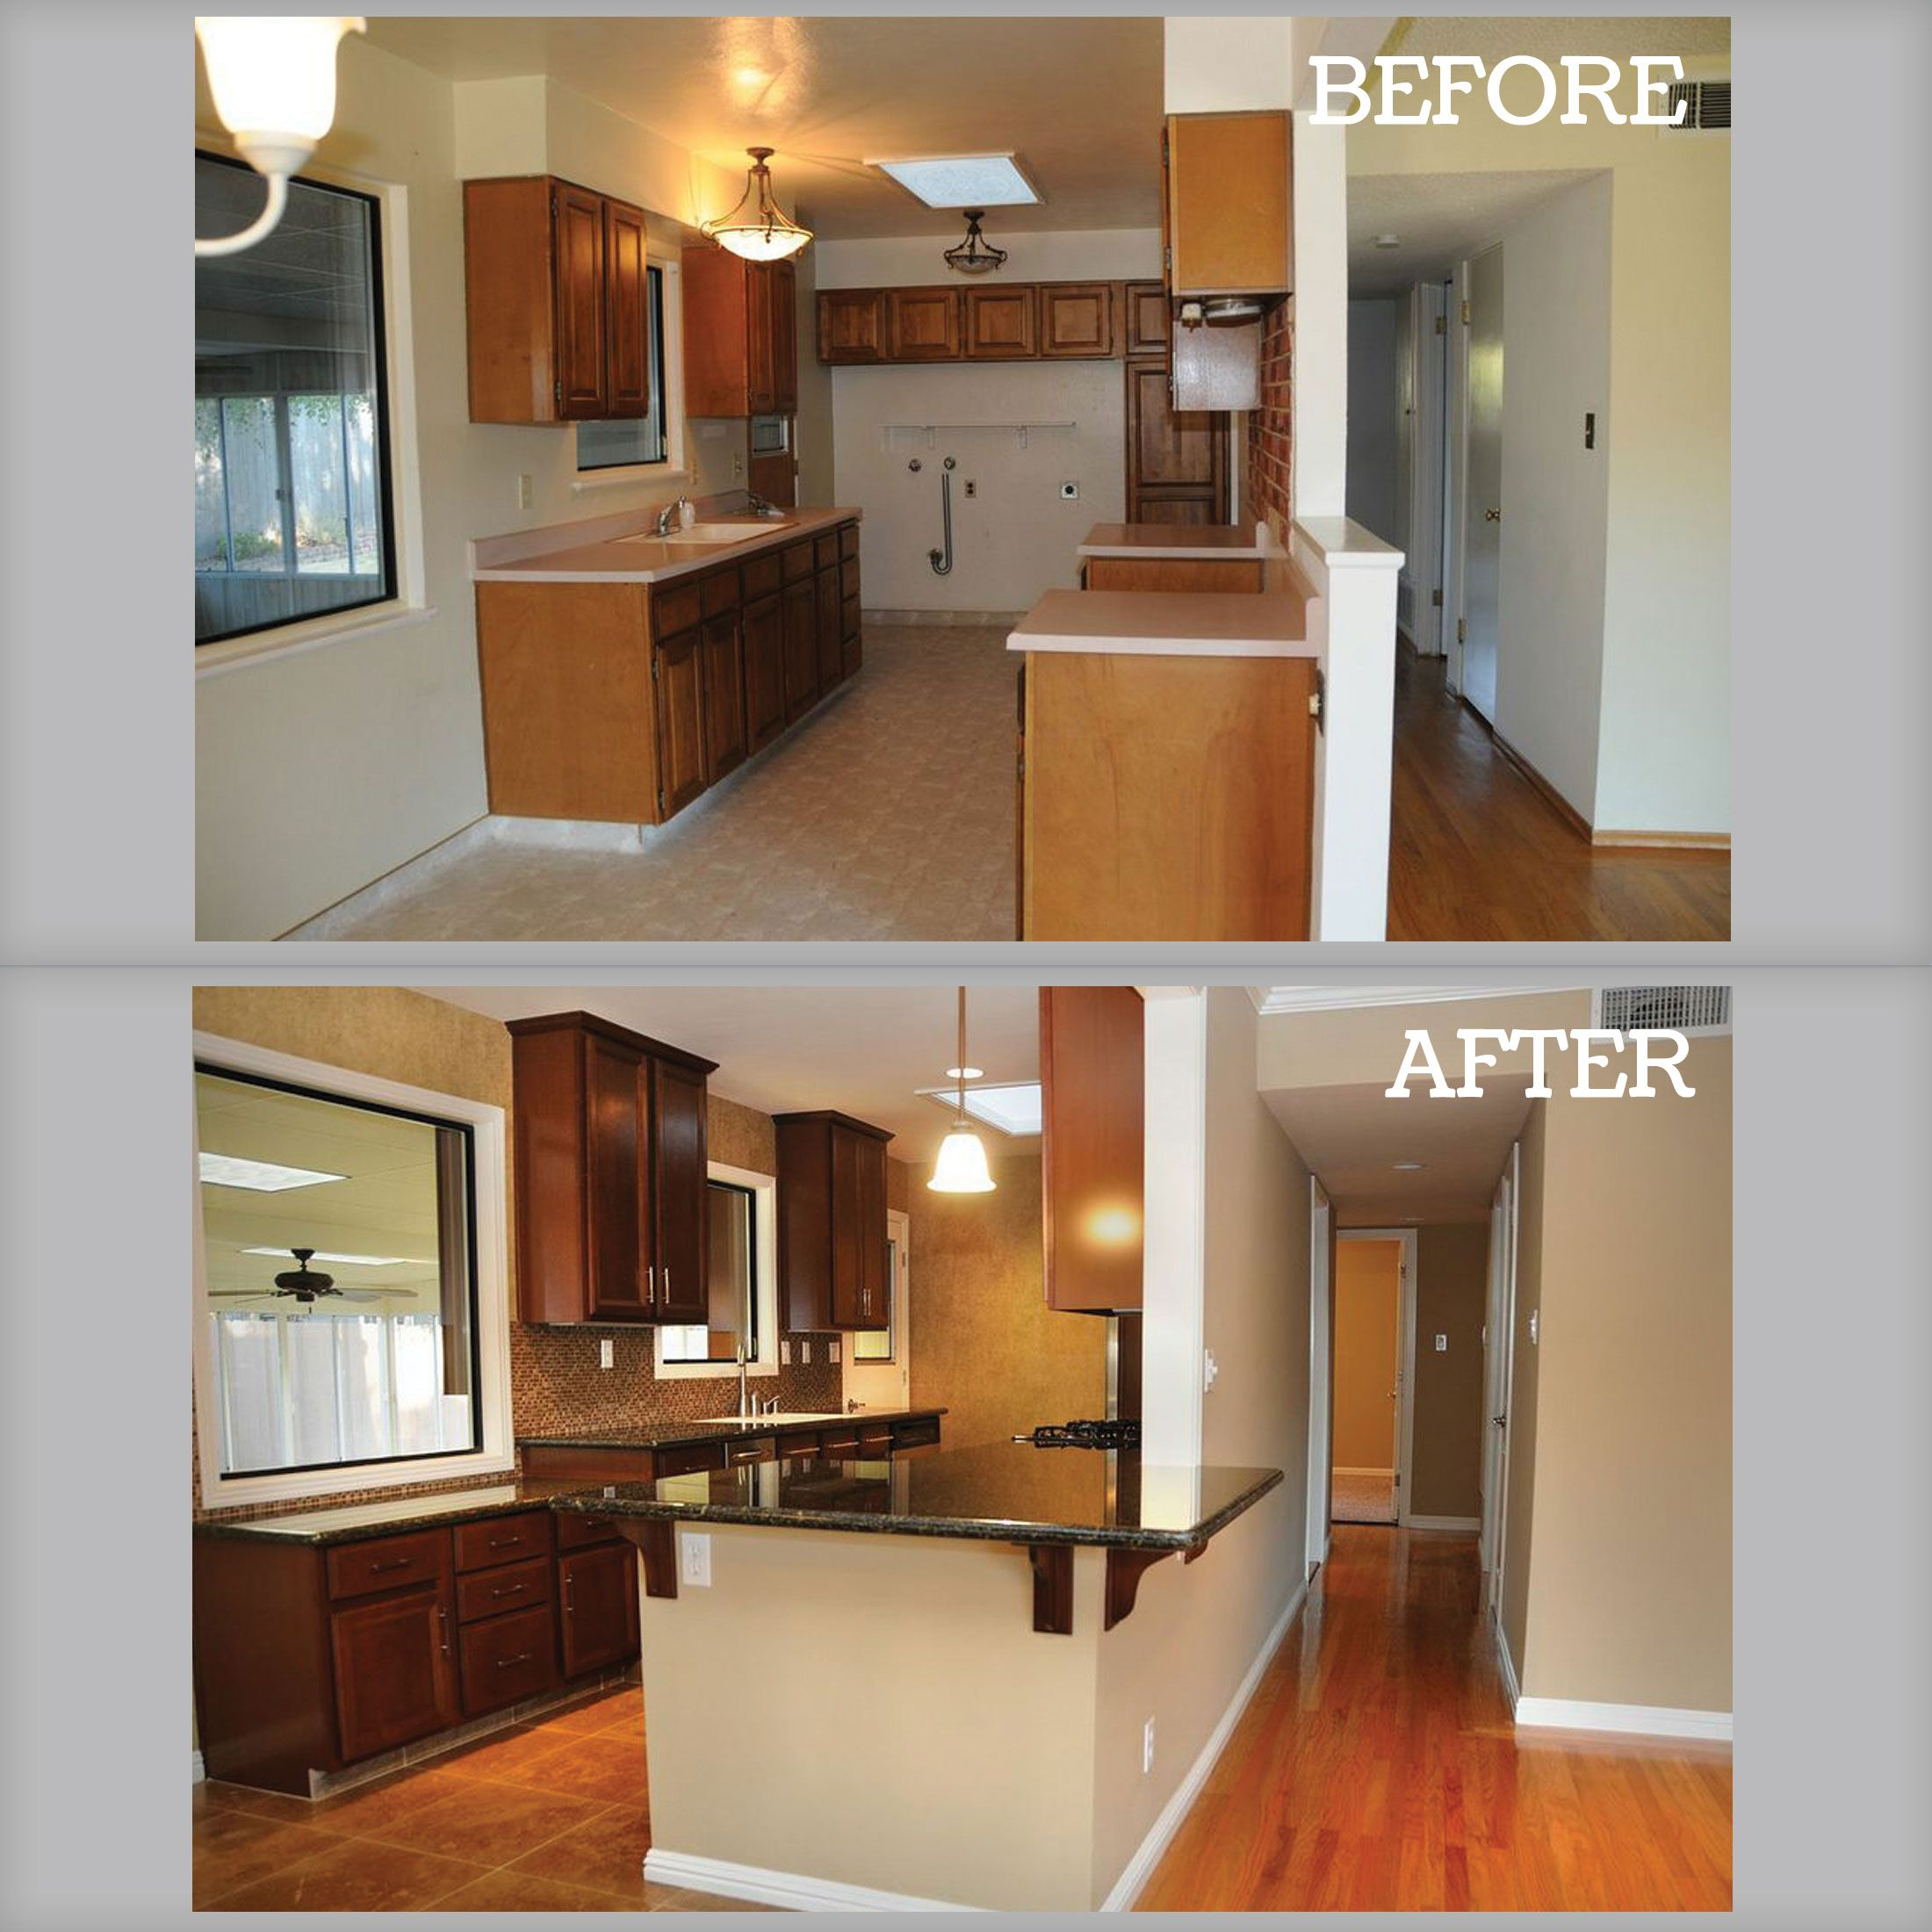 a before and after photo of a kitchen remodel hybrid homes did using a 203k renovation l on kitchen renovation id=45196